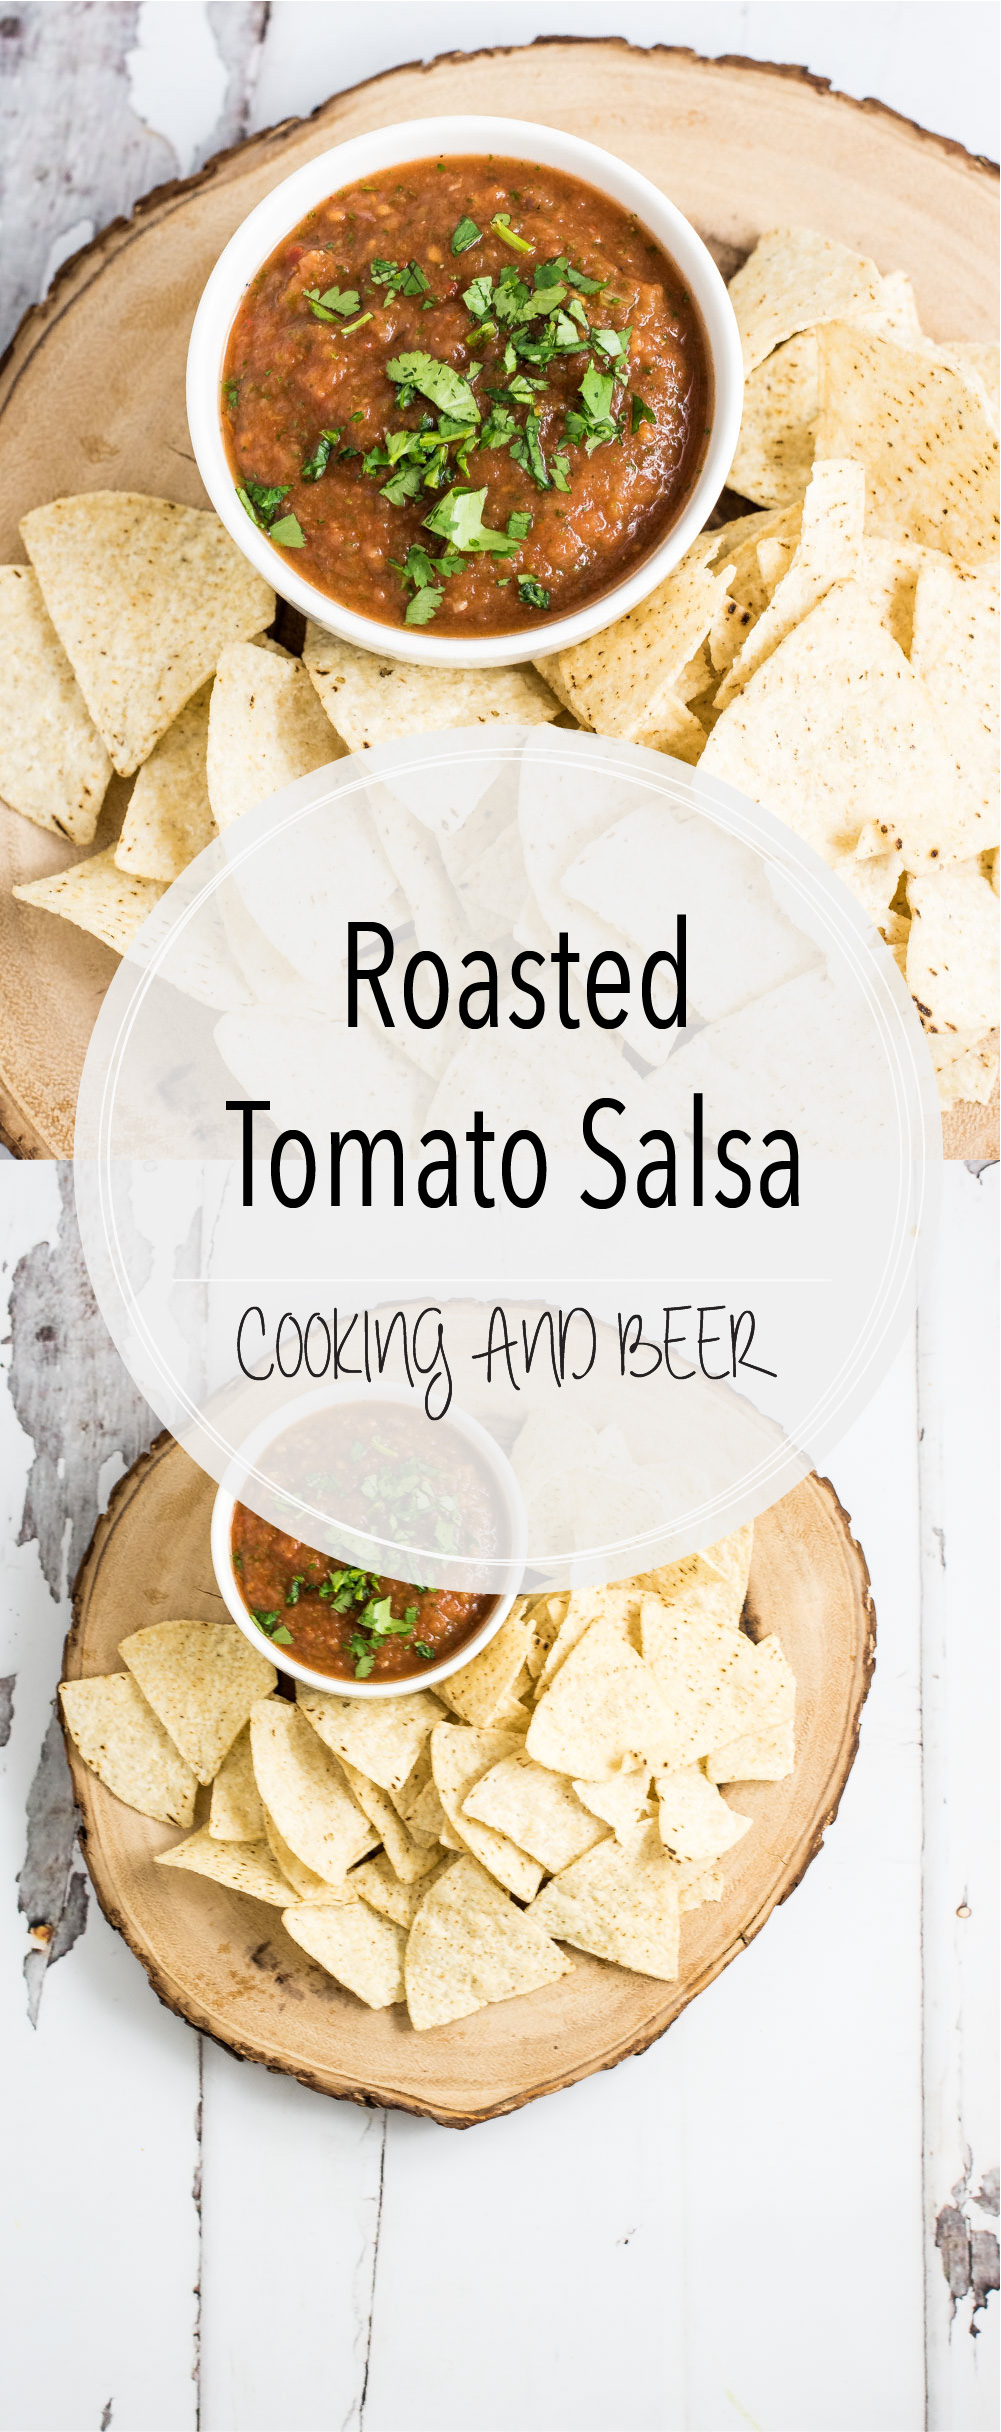 Simple, quick, and delicious: this roasted tomato salsa takes your average restaurant-style salsa to the next level! It's the perfect appetizer!